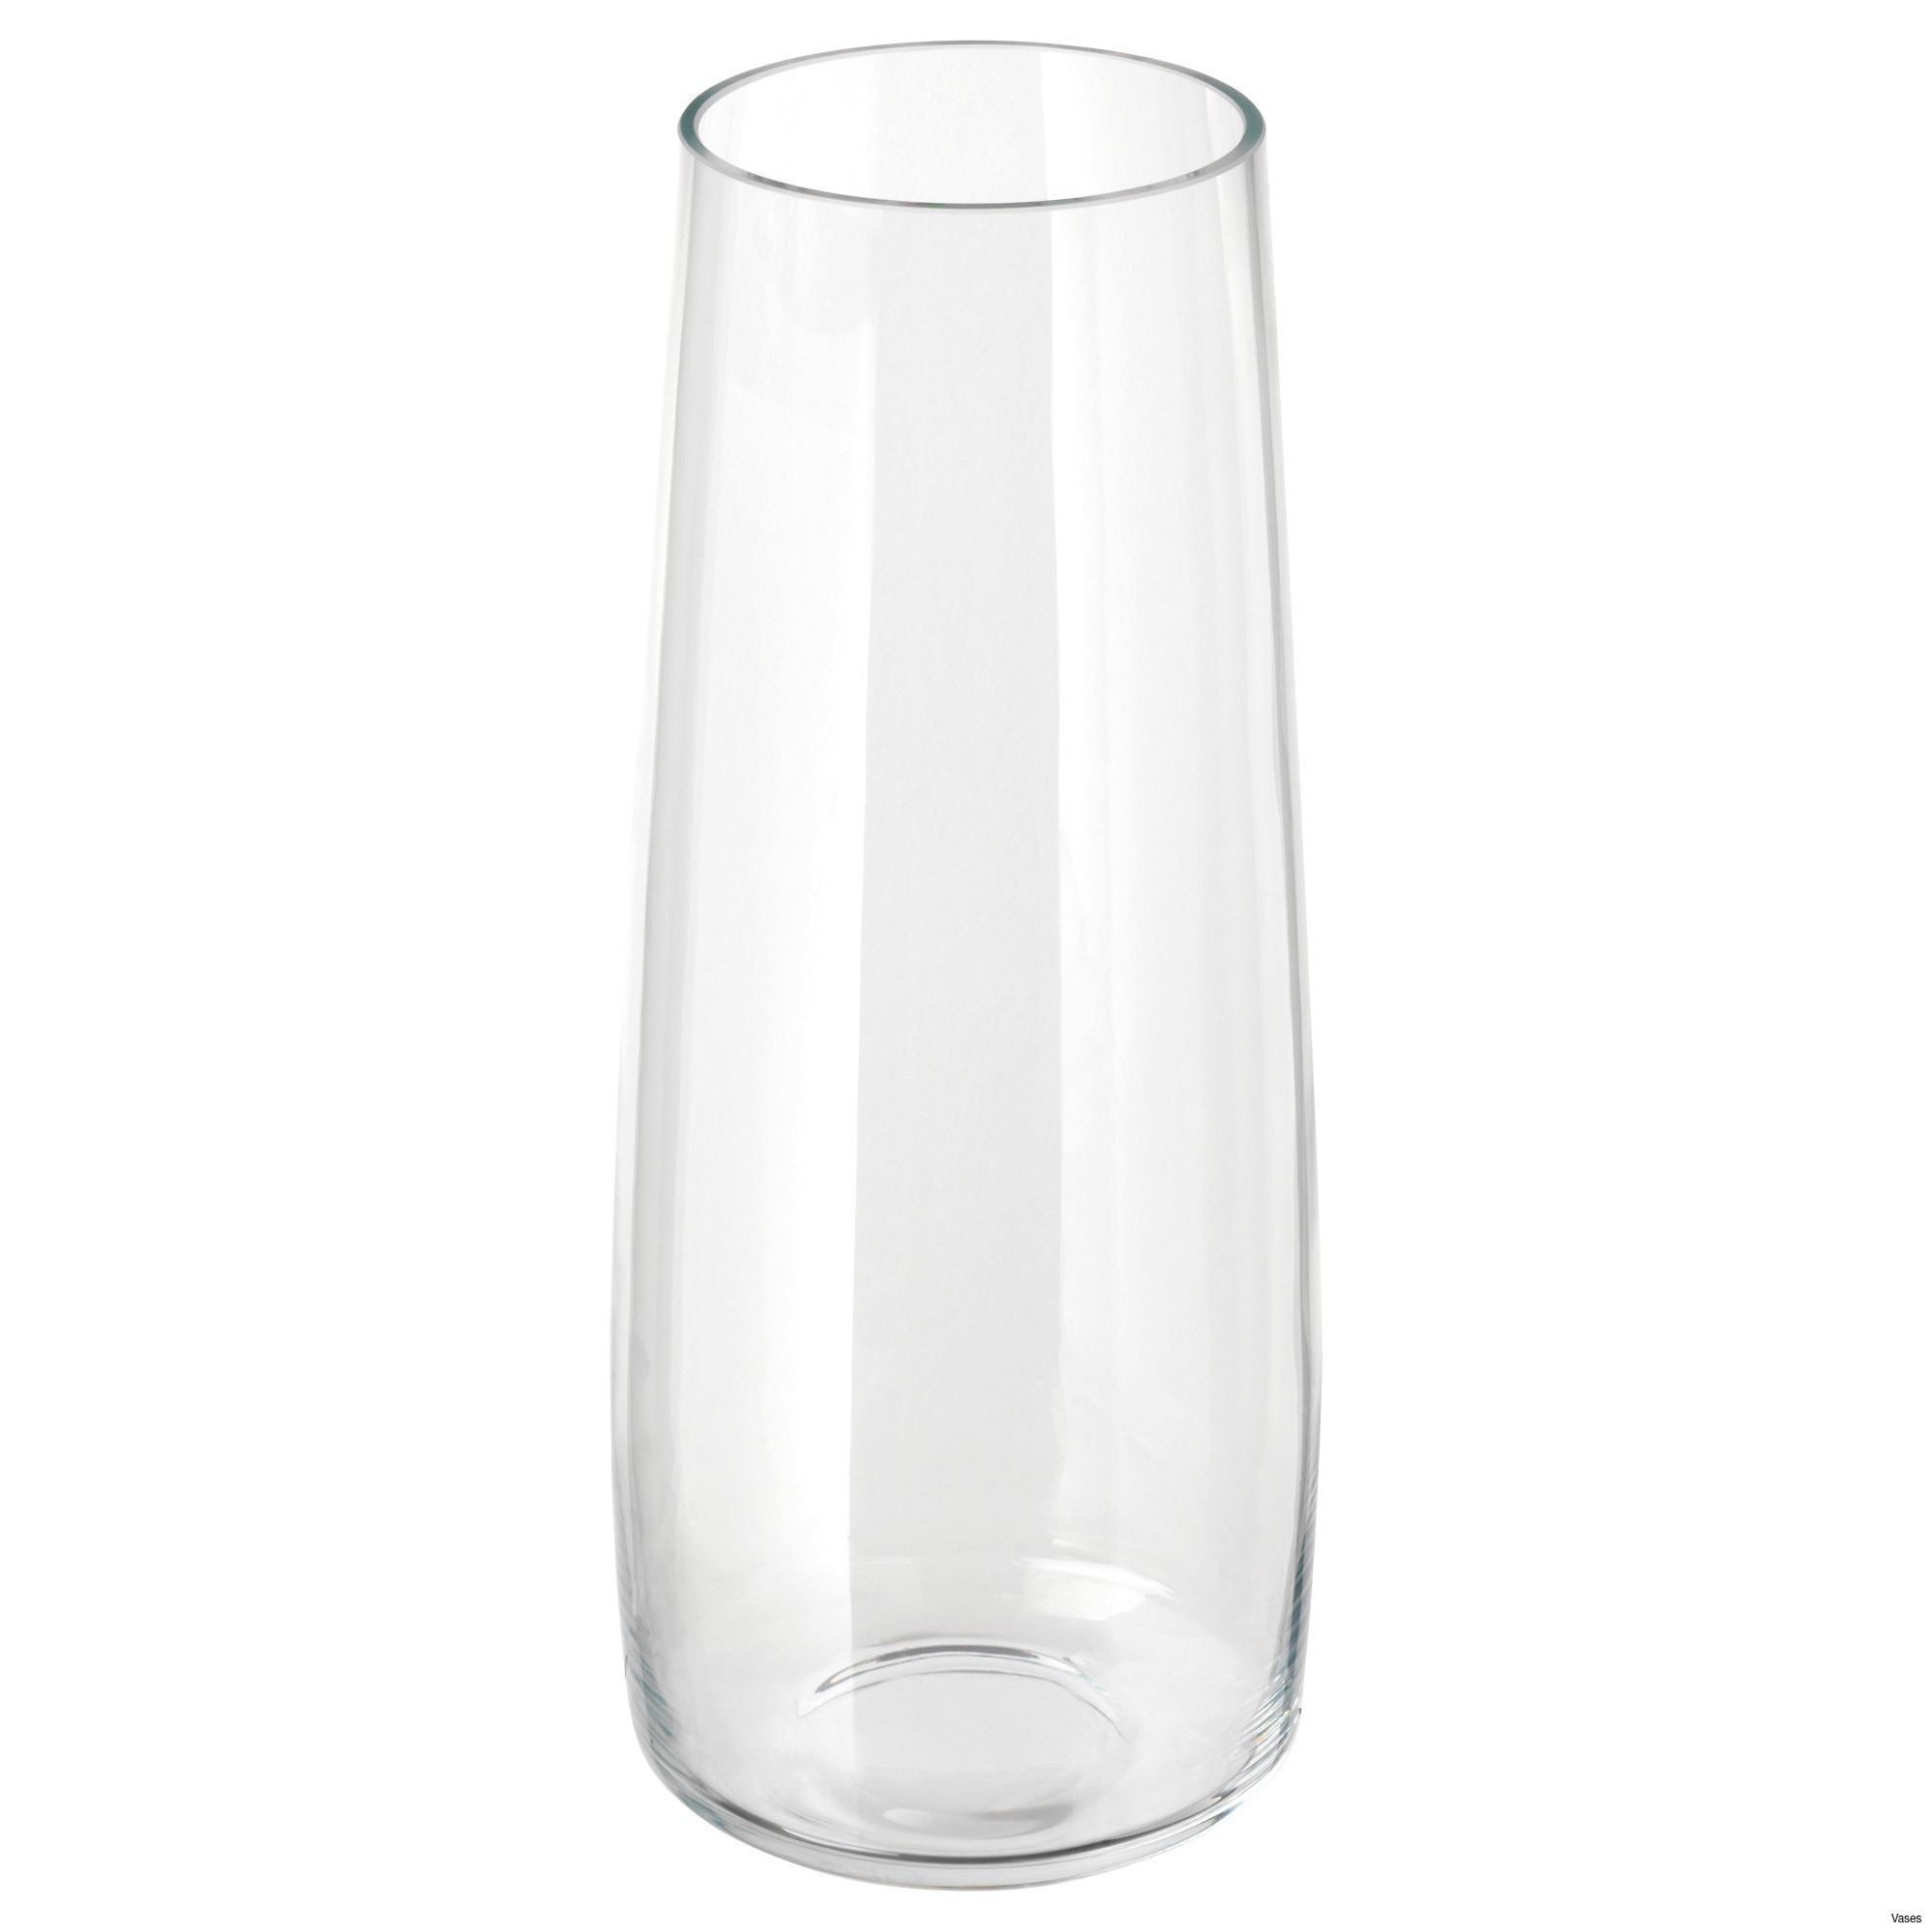 tall clear cylinder vases bulk of large glass vases pictures clear glass planters fresh clear glass within clear glass planters fresh clear glass vases wholesale